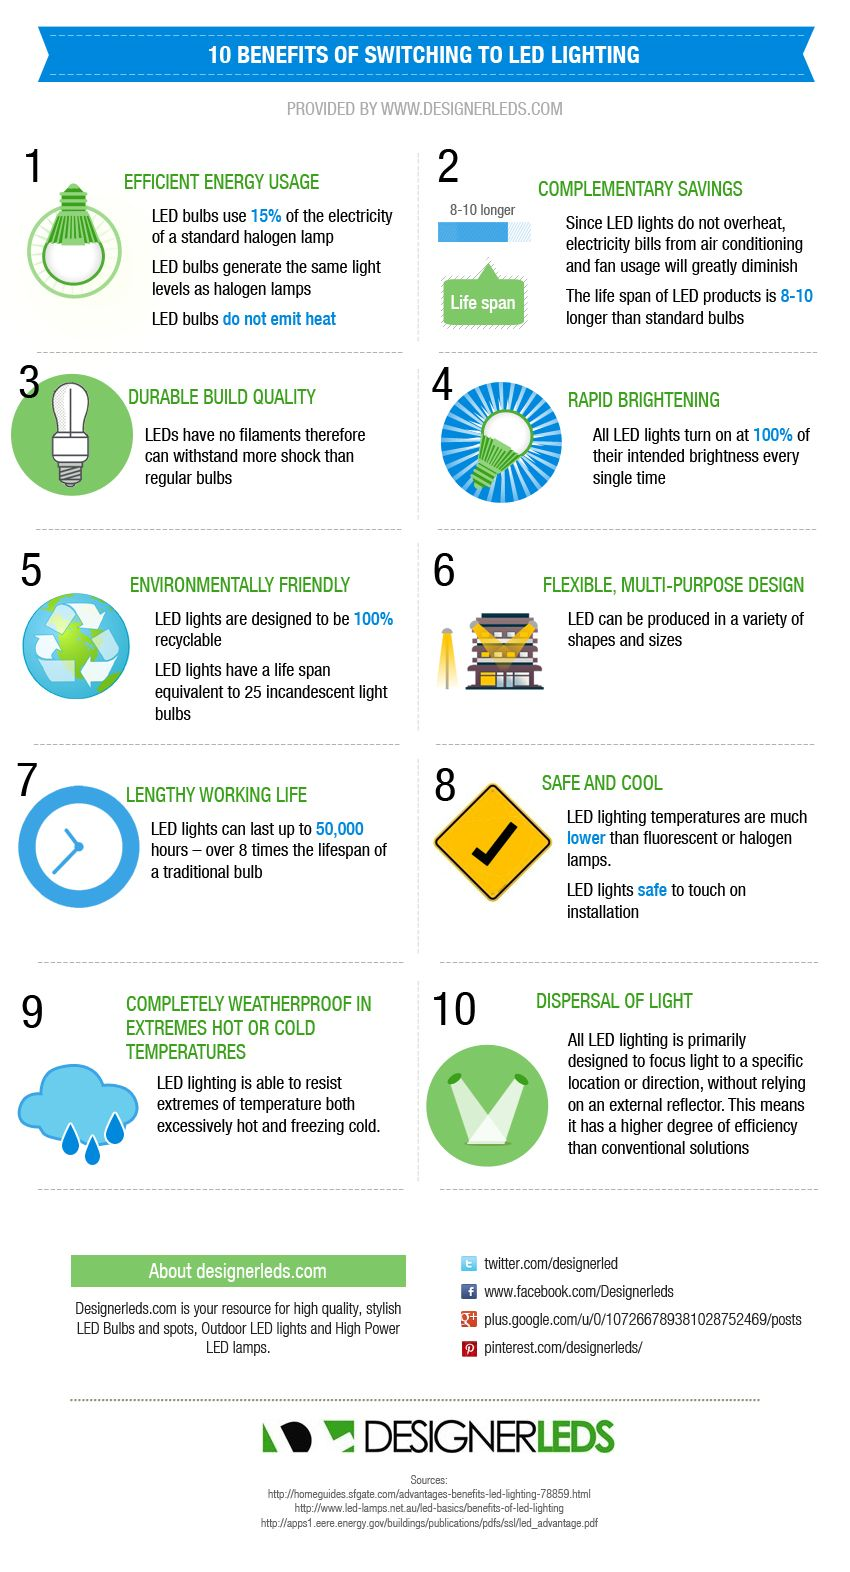 10 Benefits of LED Lighting {Infographic}